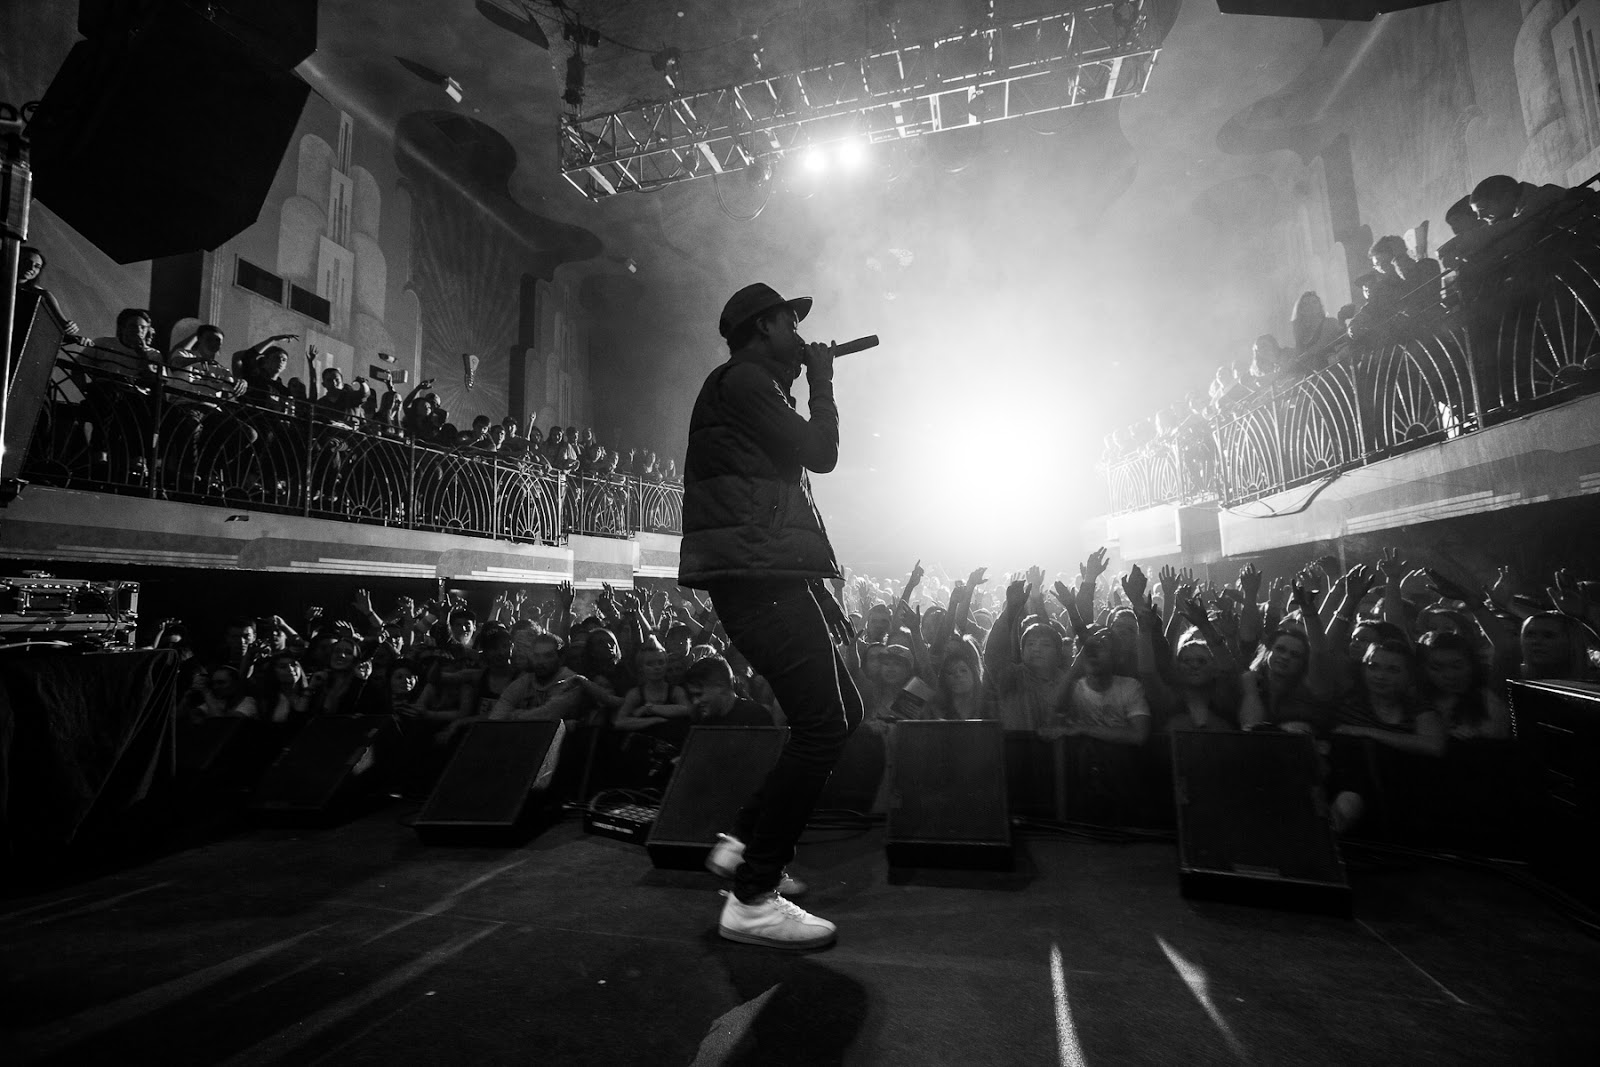 G Eazy Iphone Wallpaper Hd 2dudes1musicblog Coast To Coast Your Premier Music Blog